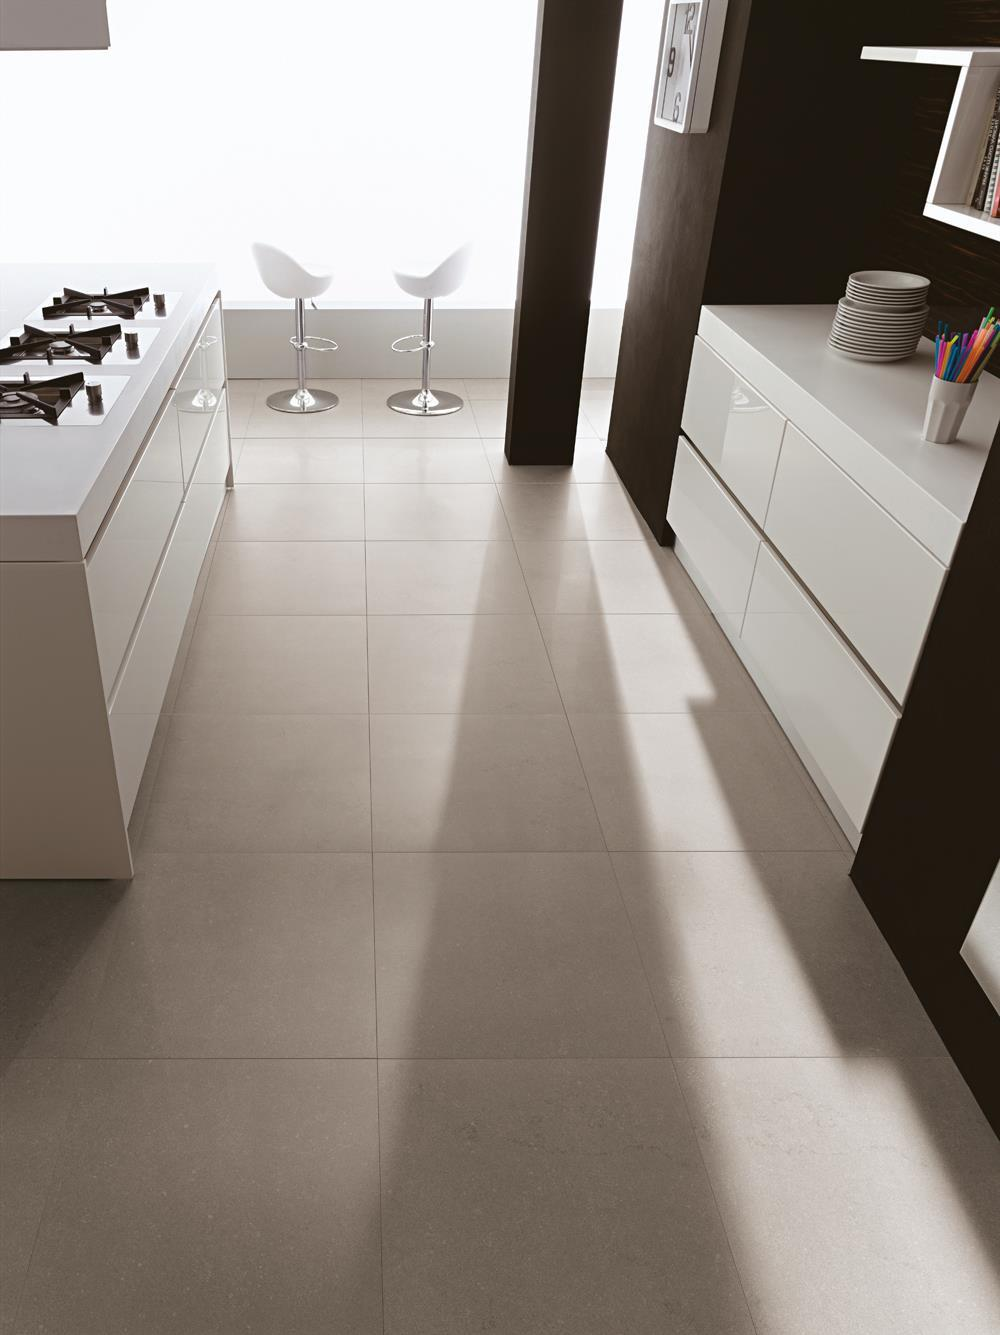 cotto d'este gres porcellanato 14 mm buxy